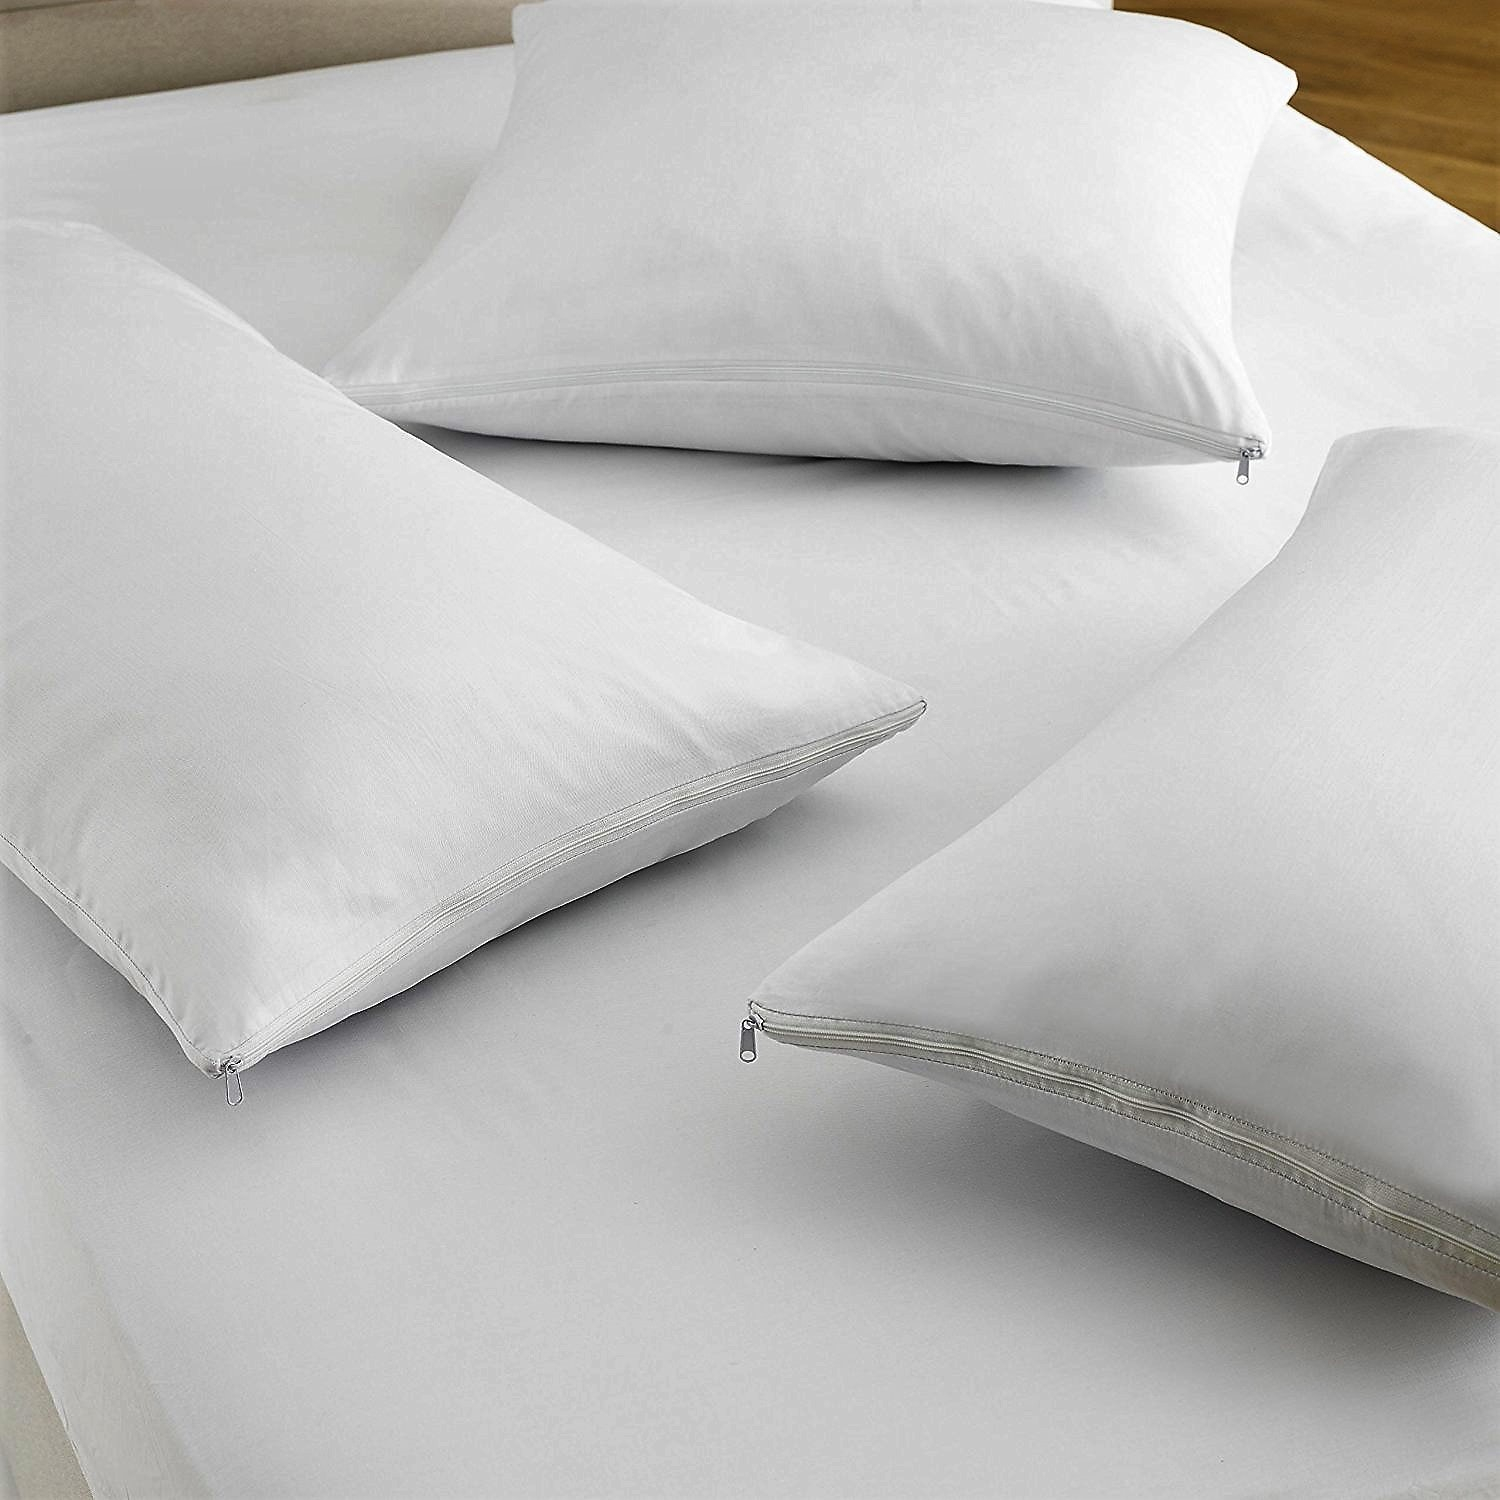 Tefflon_pillow_protectors_BETTER-min.jpg